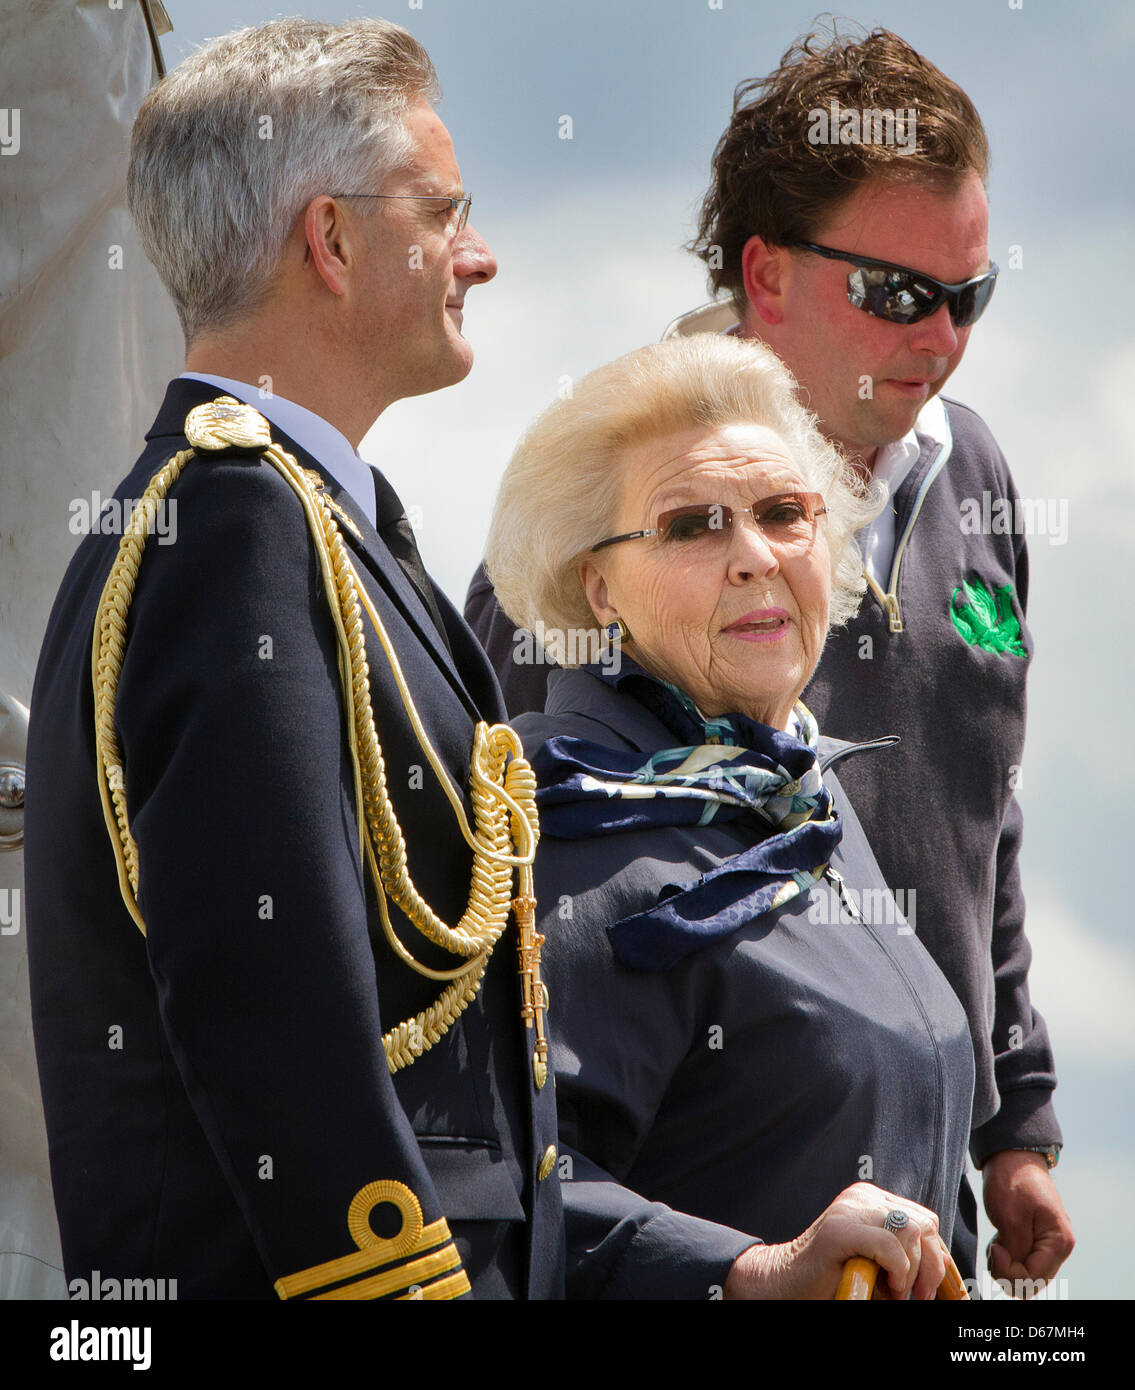 Dutch Queen Beatrix at the helm of her yacht Green Draeck during the celebrations of the 100th anniversary of the - Stock Image